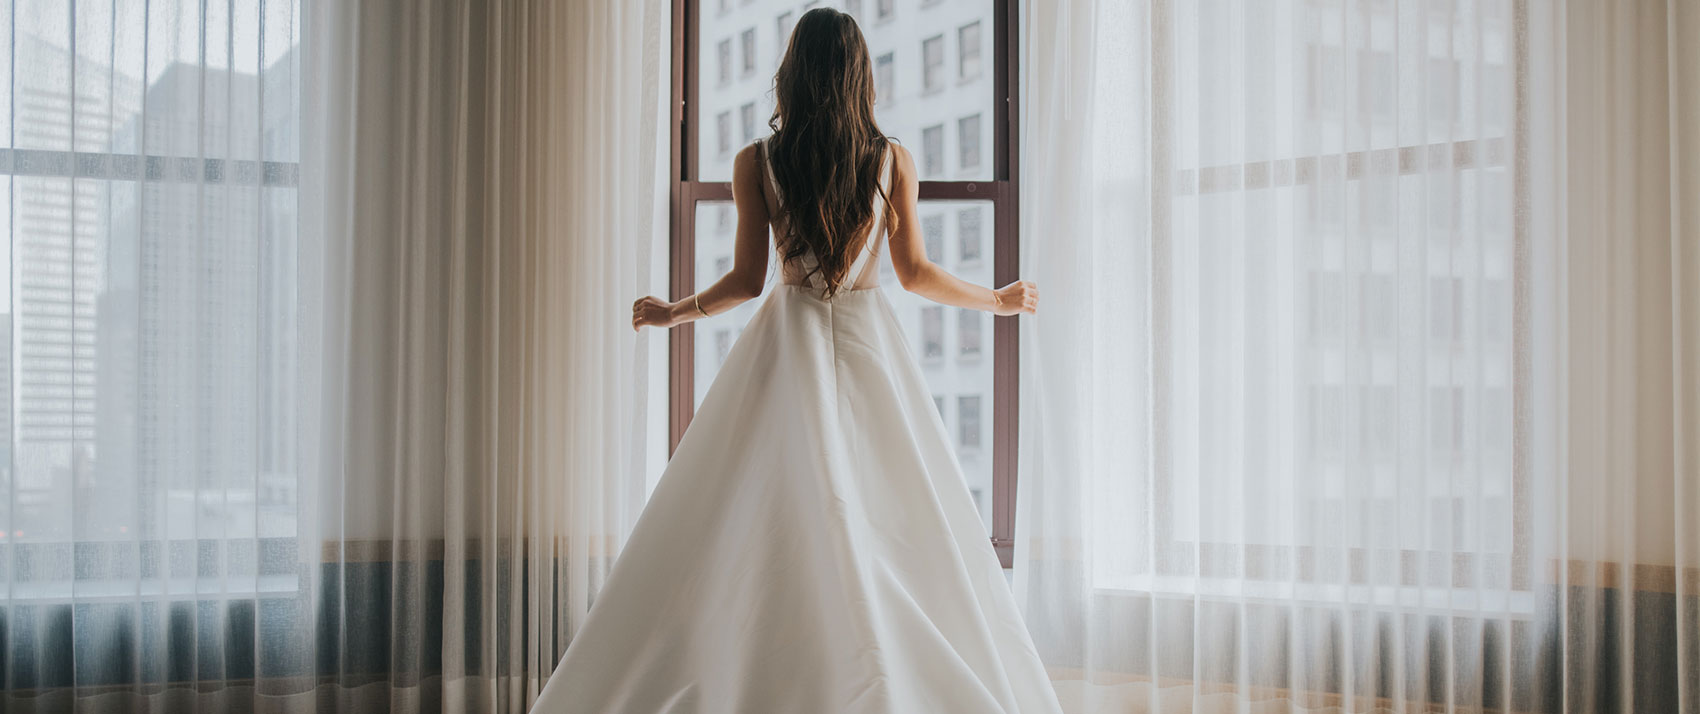 bride standing at window overlooking downtown